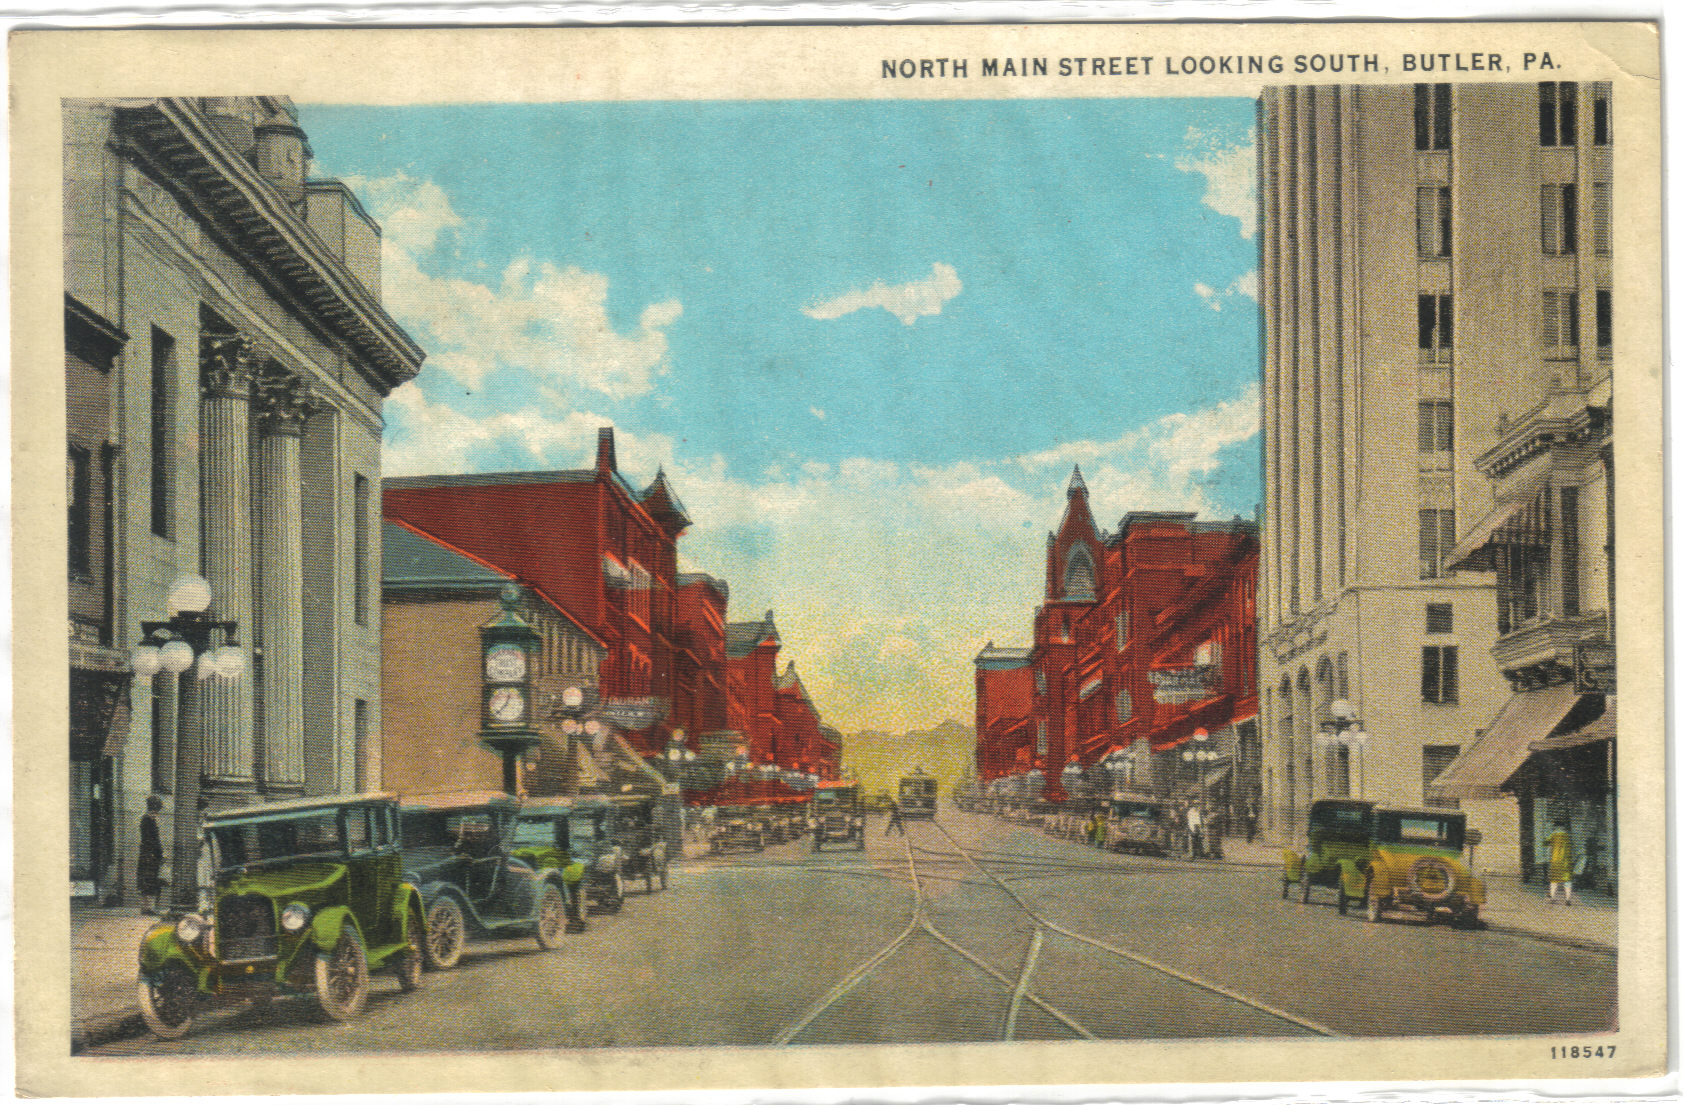 NorthMainStreetLookingSouth-front.jpg